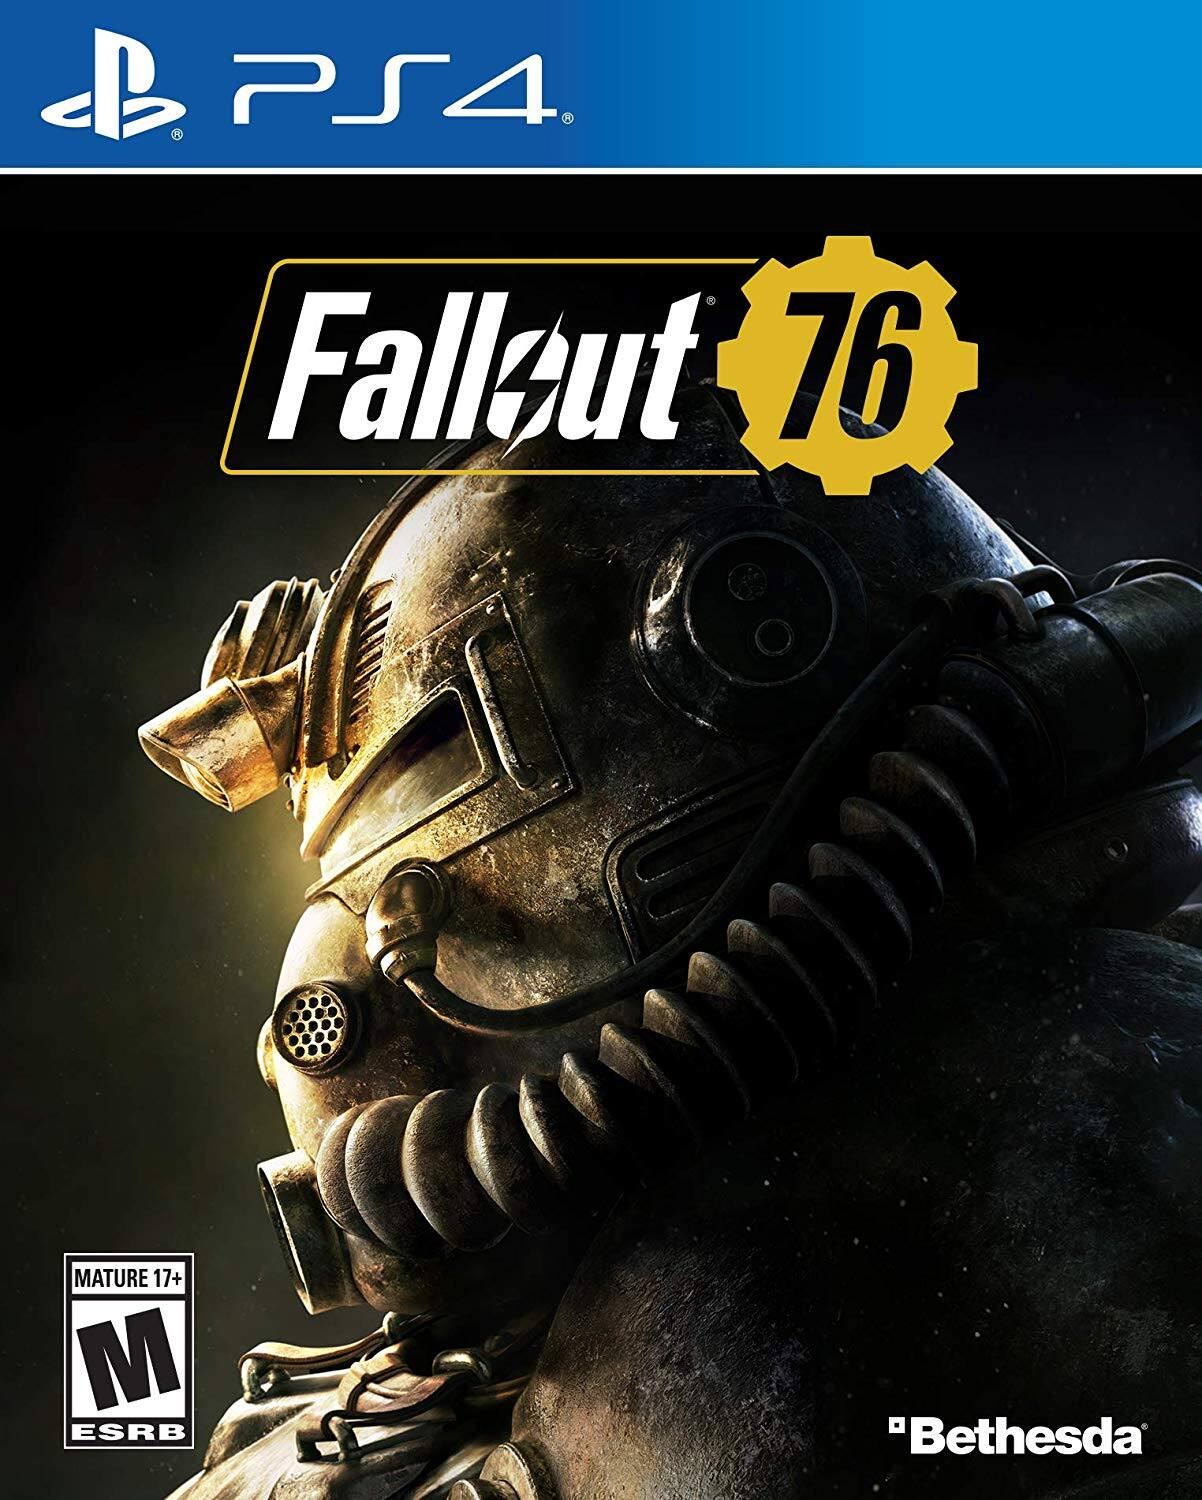 Fallout 76 - PlayStation 4 Standard Edition (Pre-Order) - $39.99 + Free Shipping